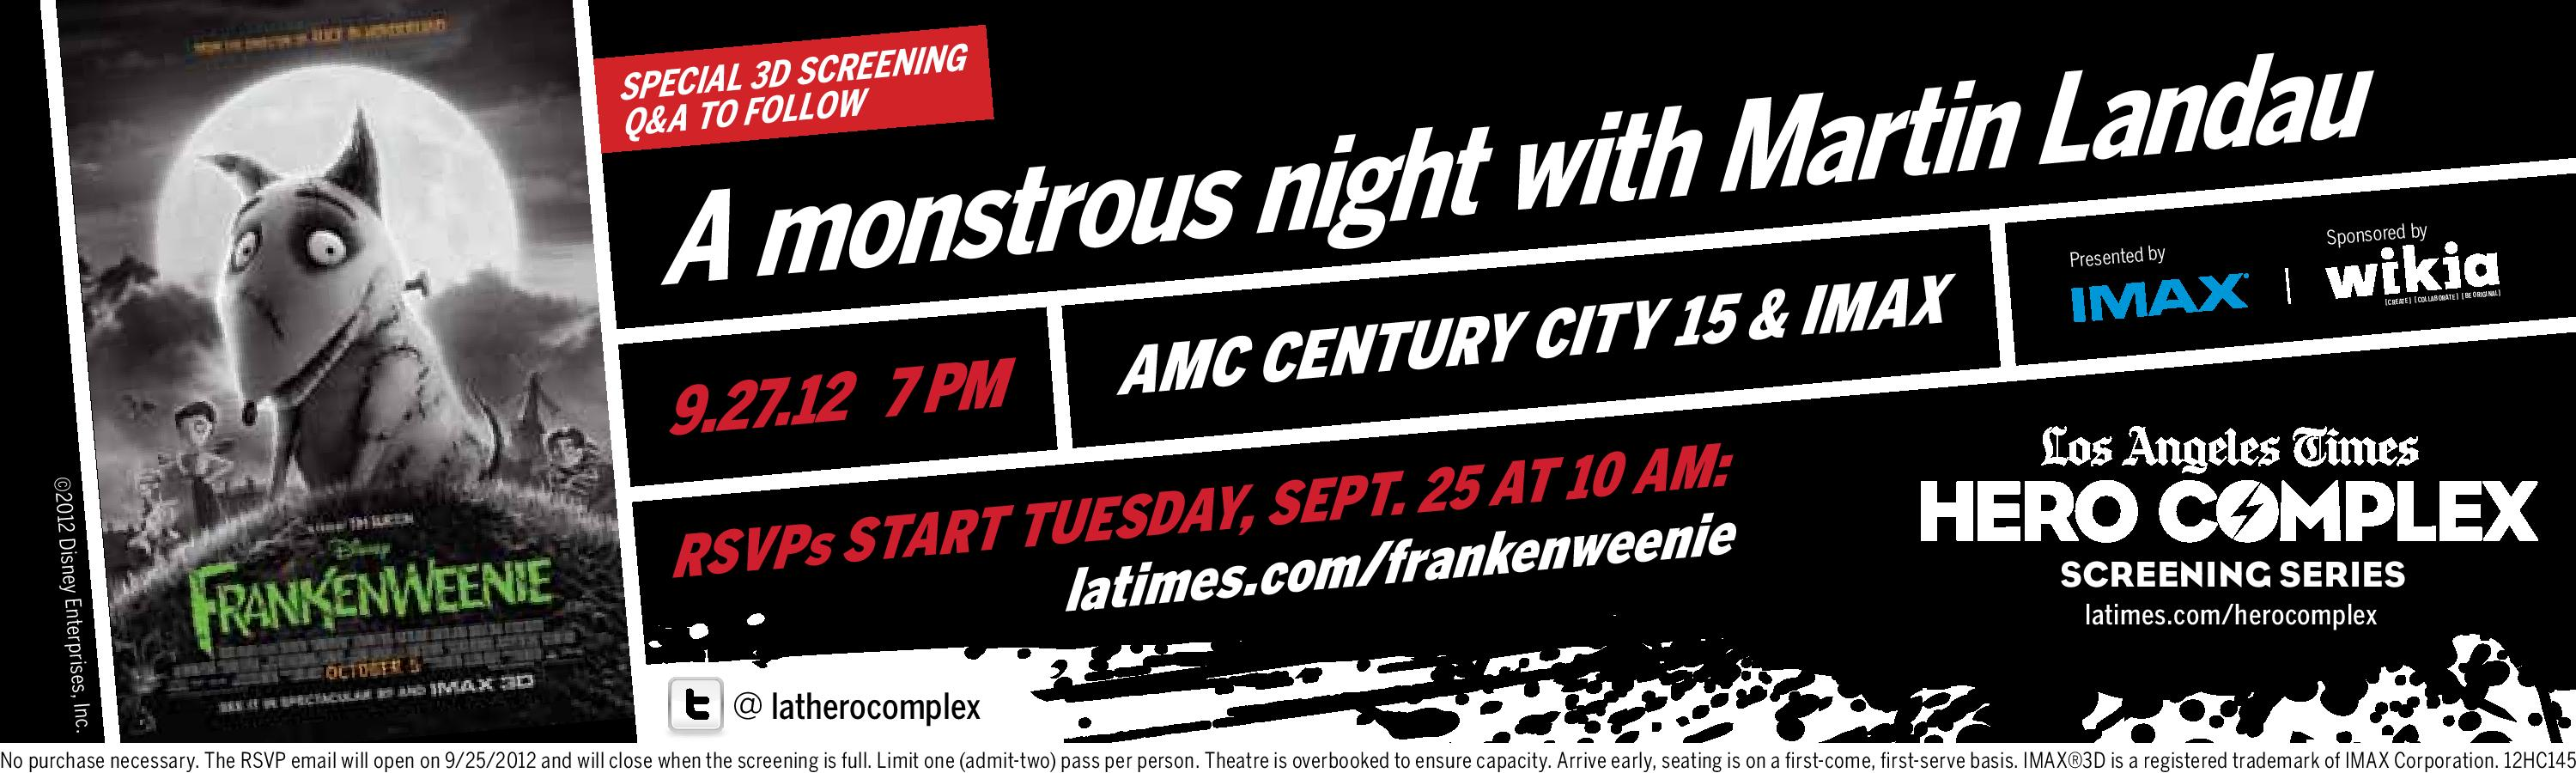 Los Angeles Times Hero Complex Screening Series of Frankenweenie in IMAX 3D